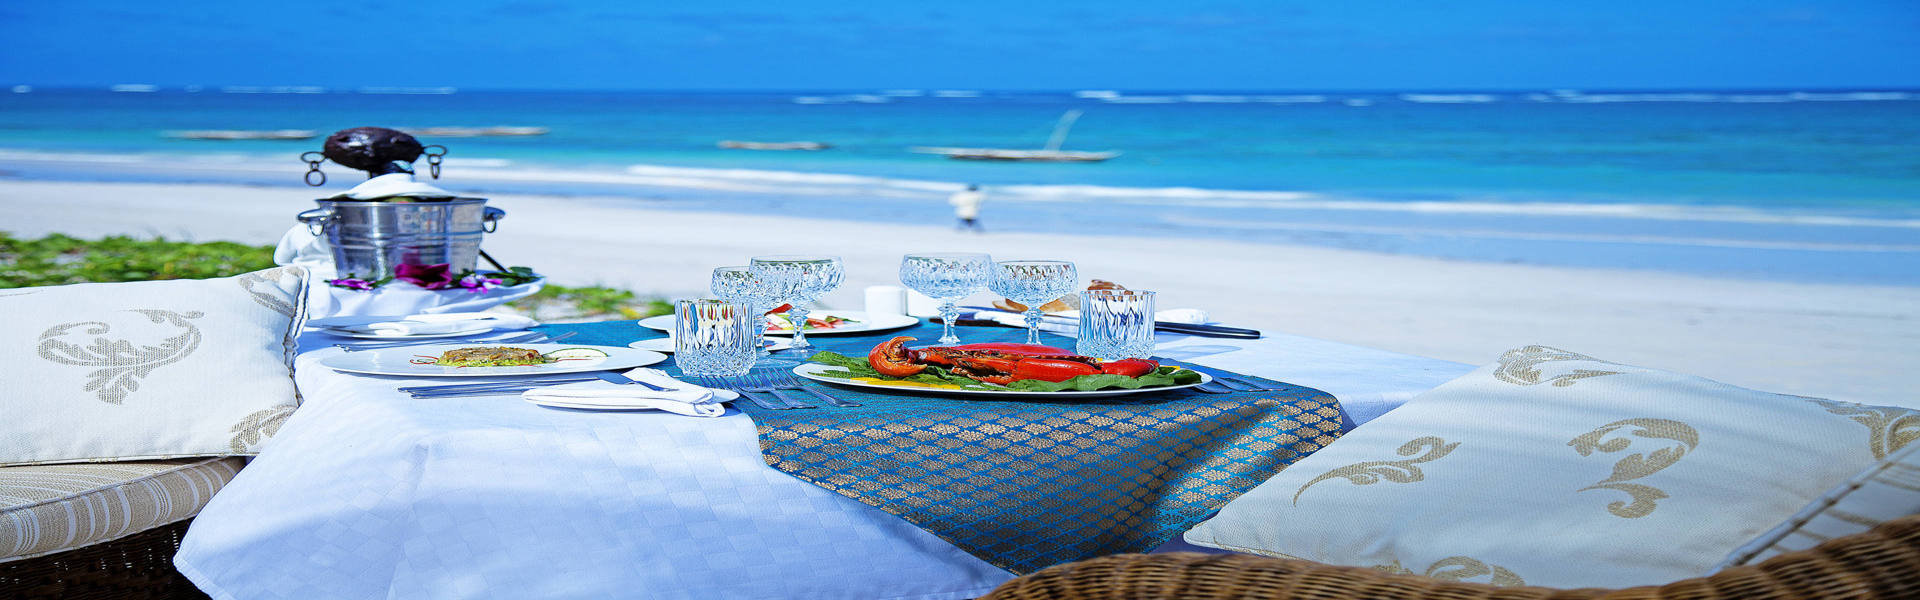 Afro Chic - beach side lunch